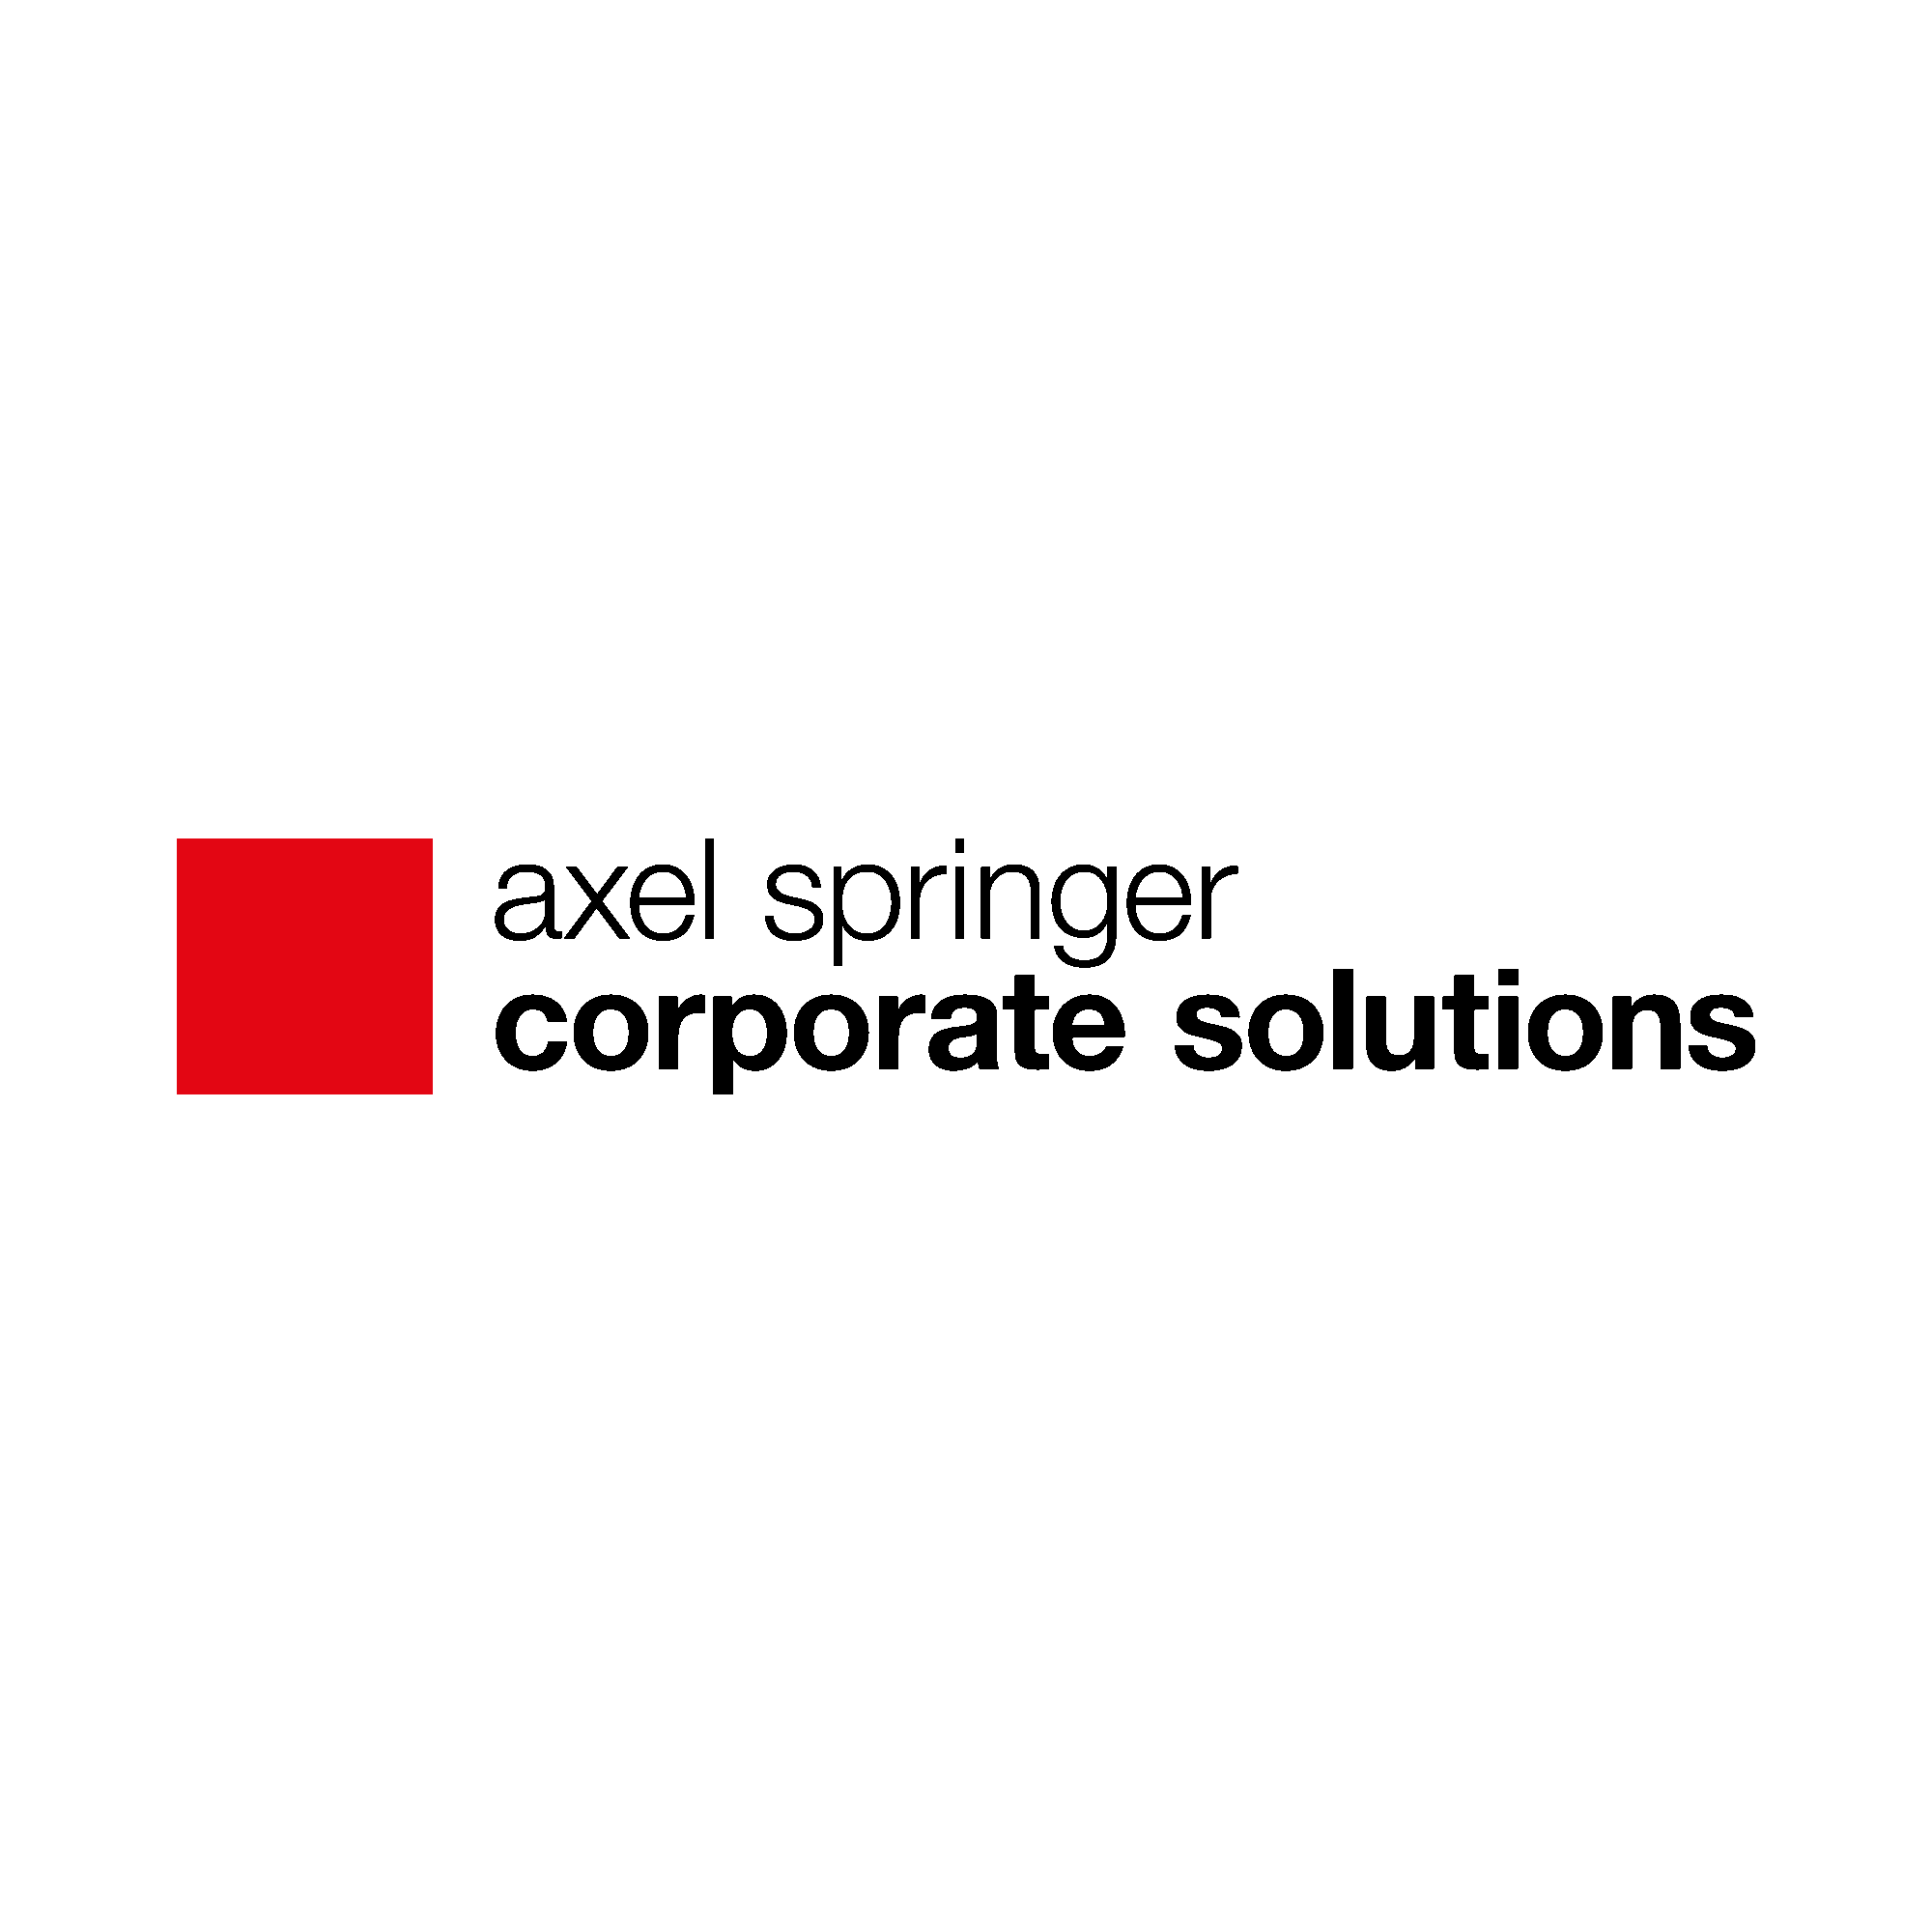 axel-springer-corporate-solutions-logo